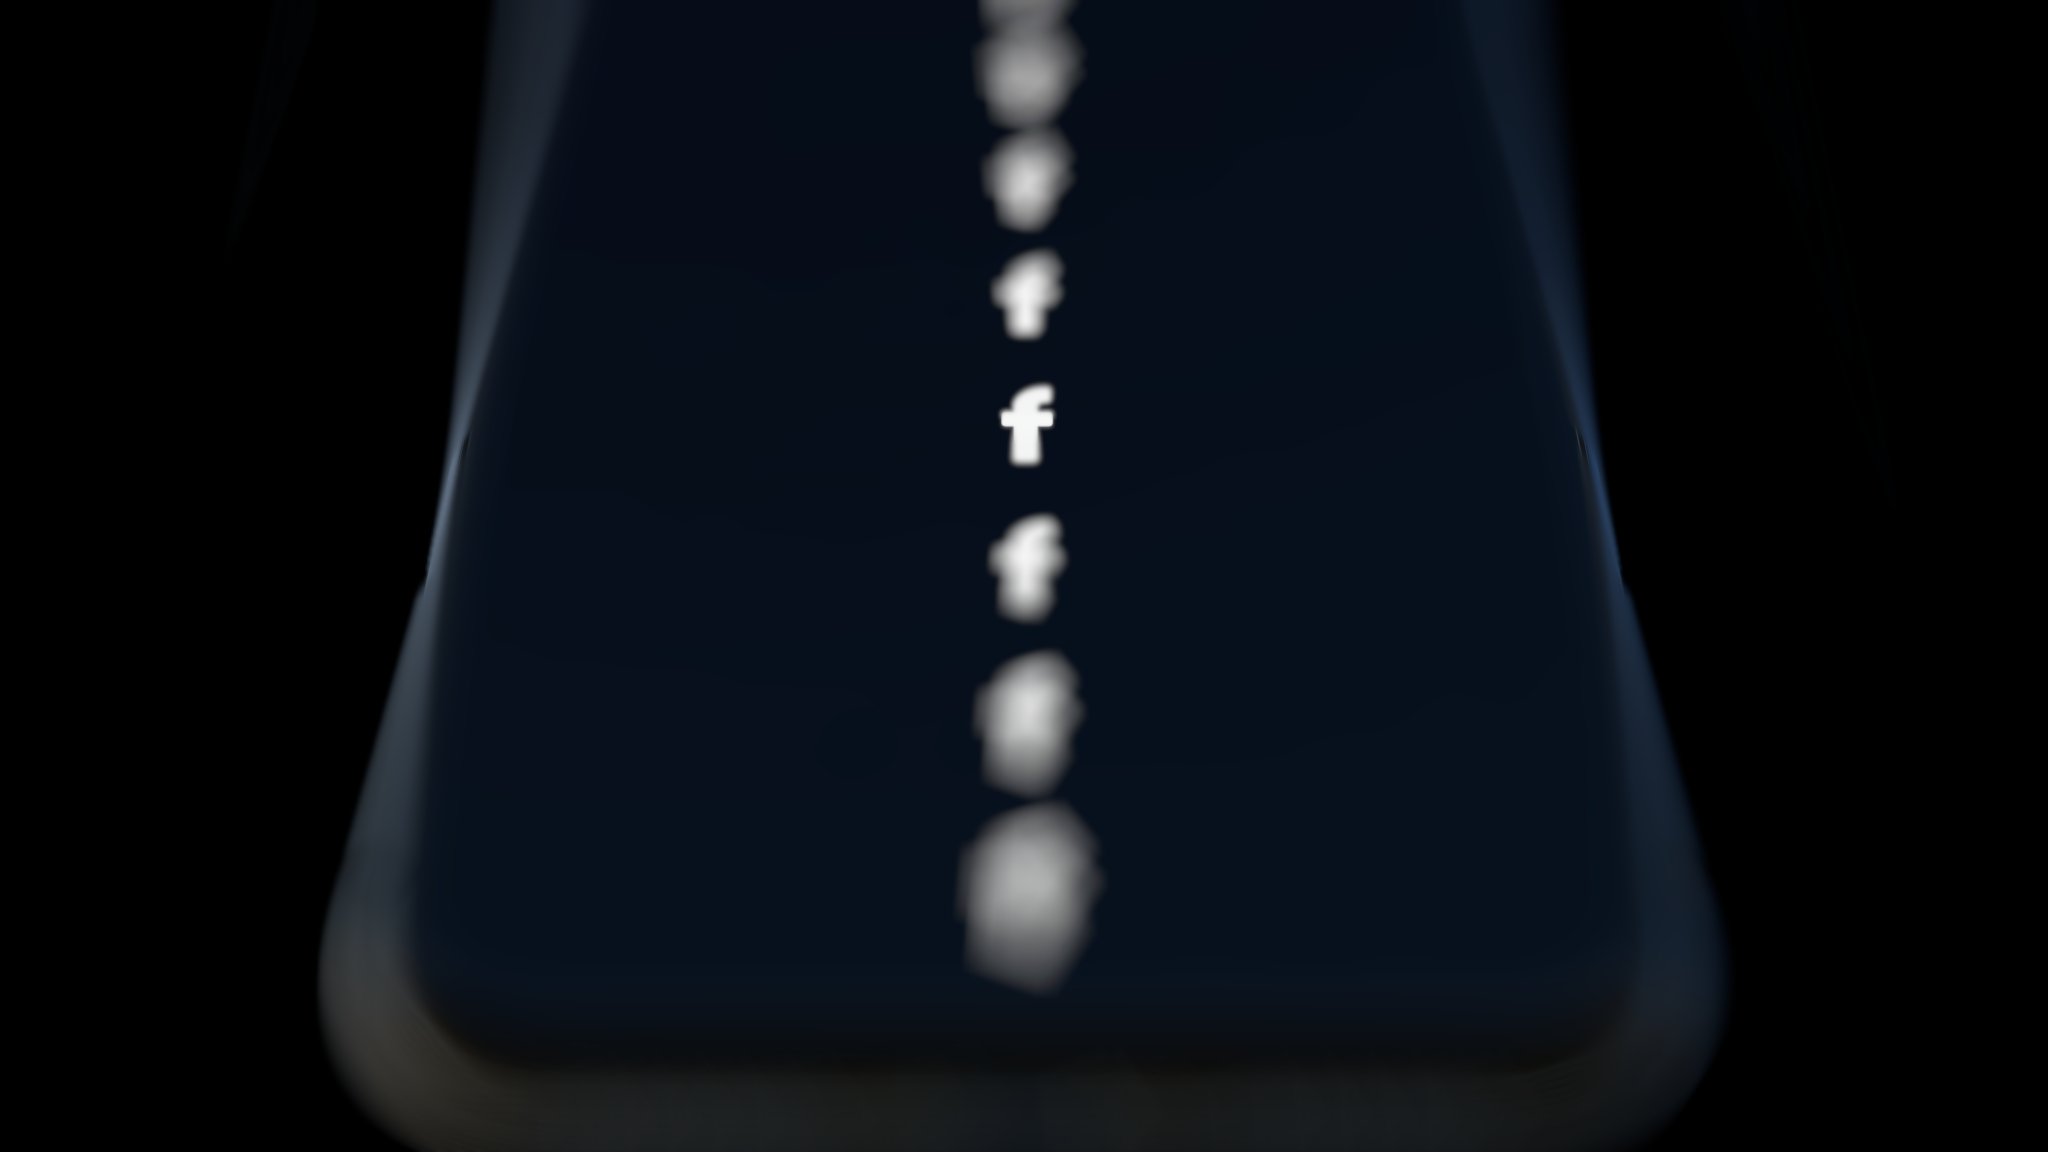 An iPhone mockup showing a high degree of depth of field